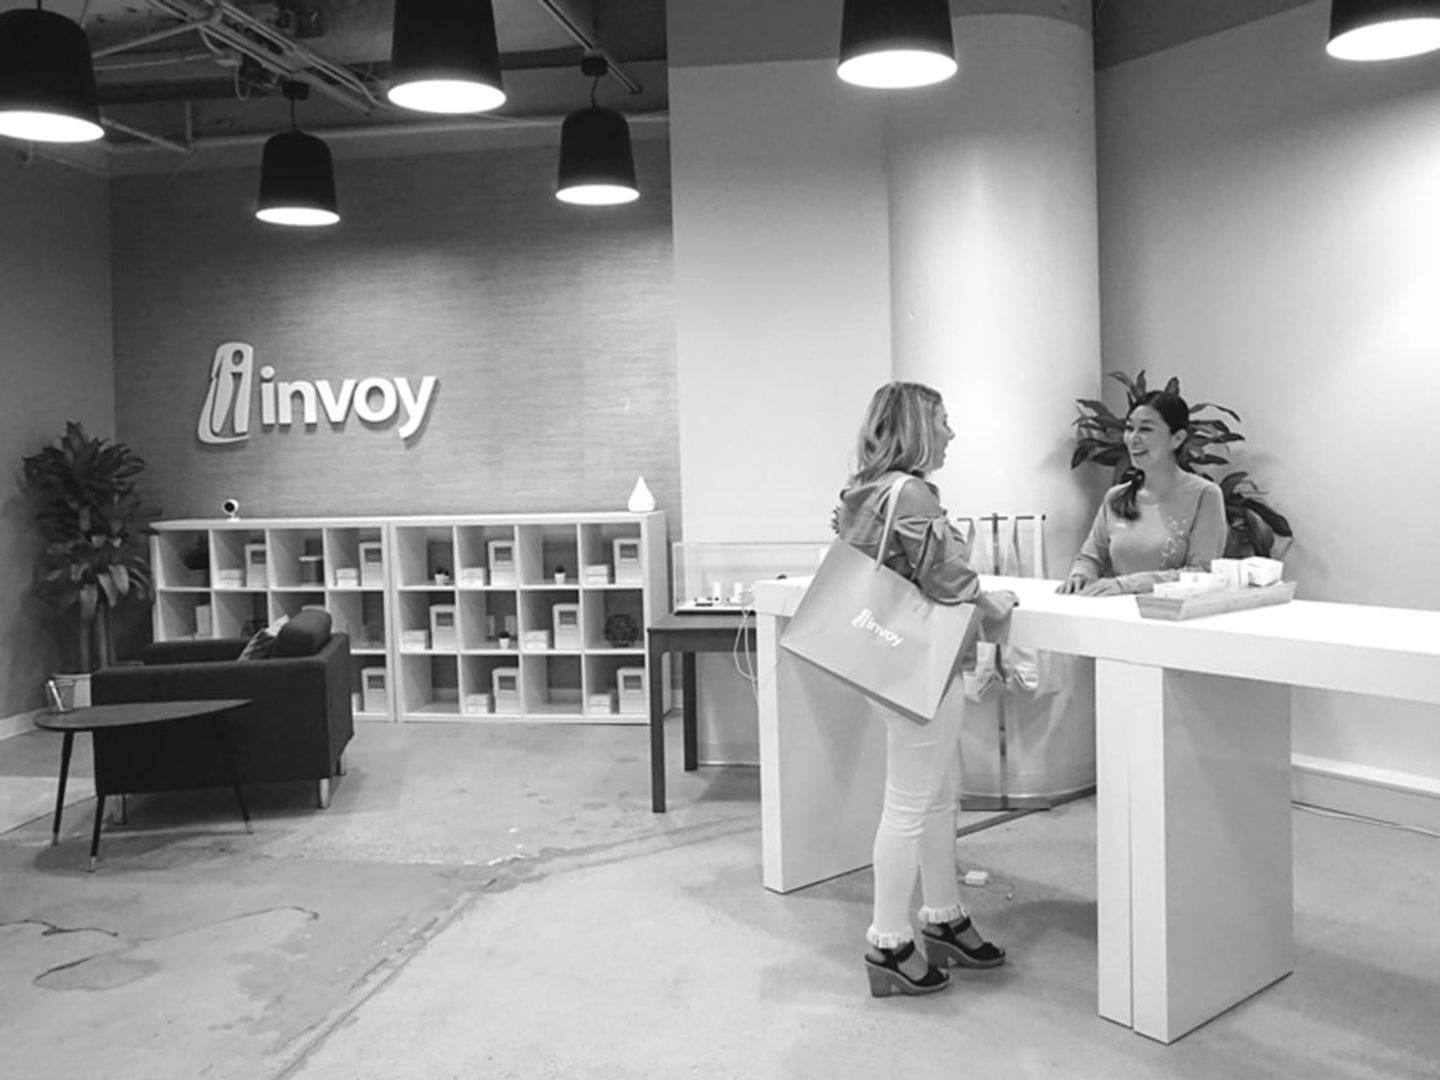 Inside Invoy office and showroom